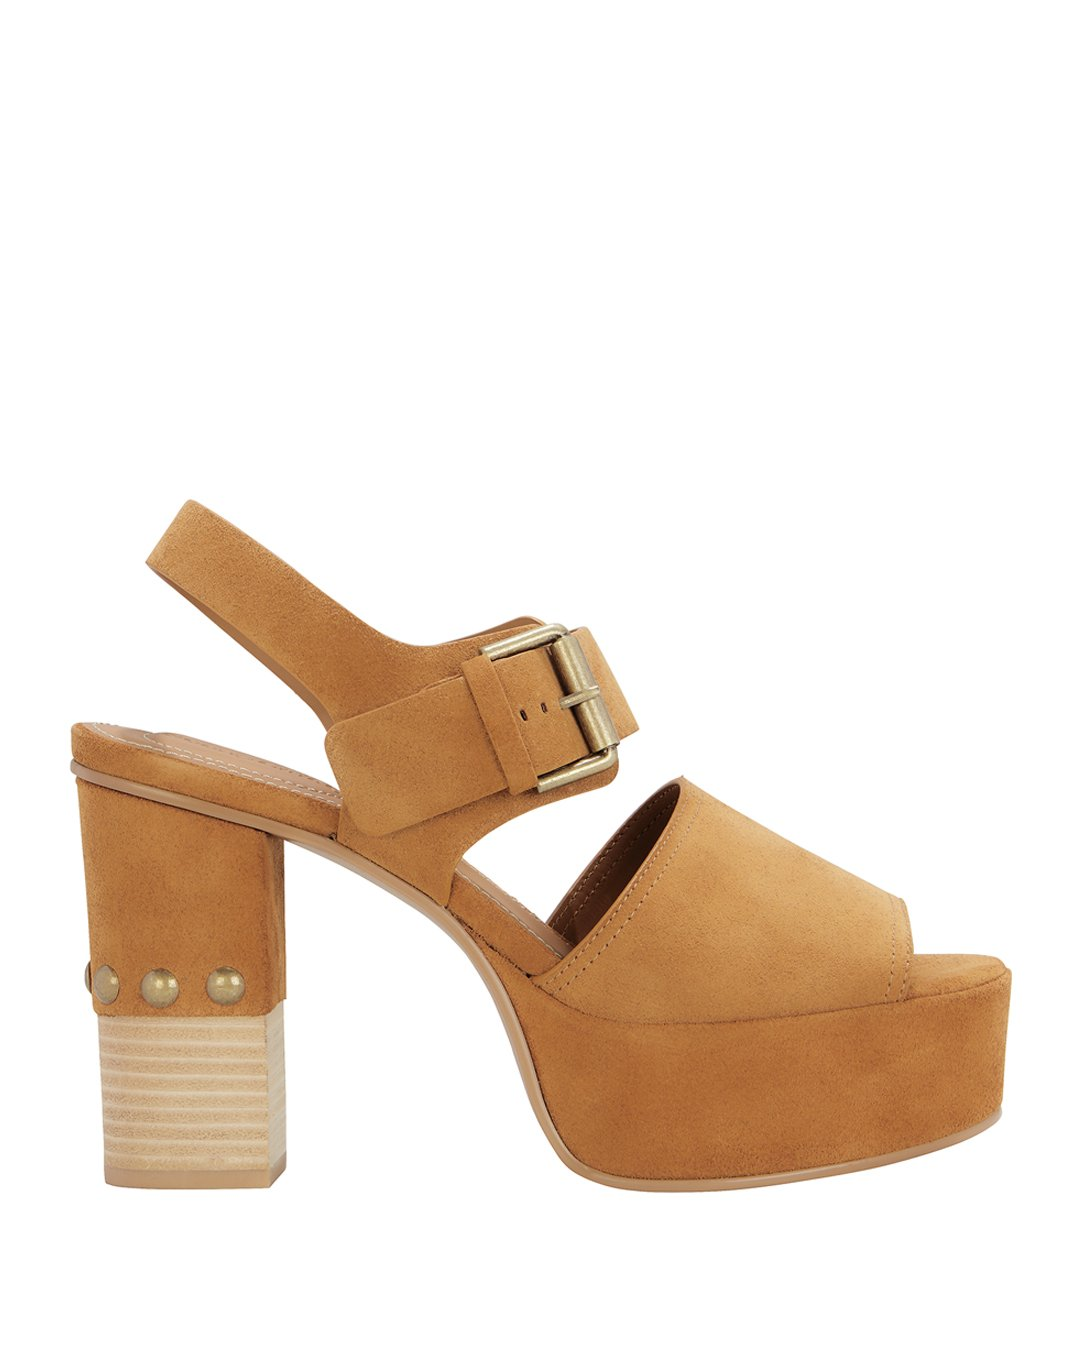 See By Chloe Classic Wedge Sandals in Tan